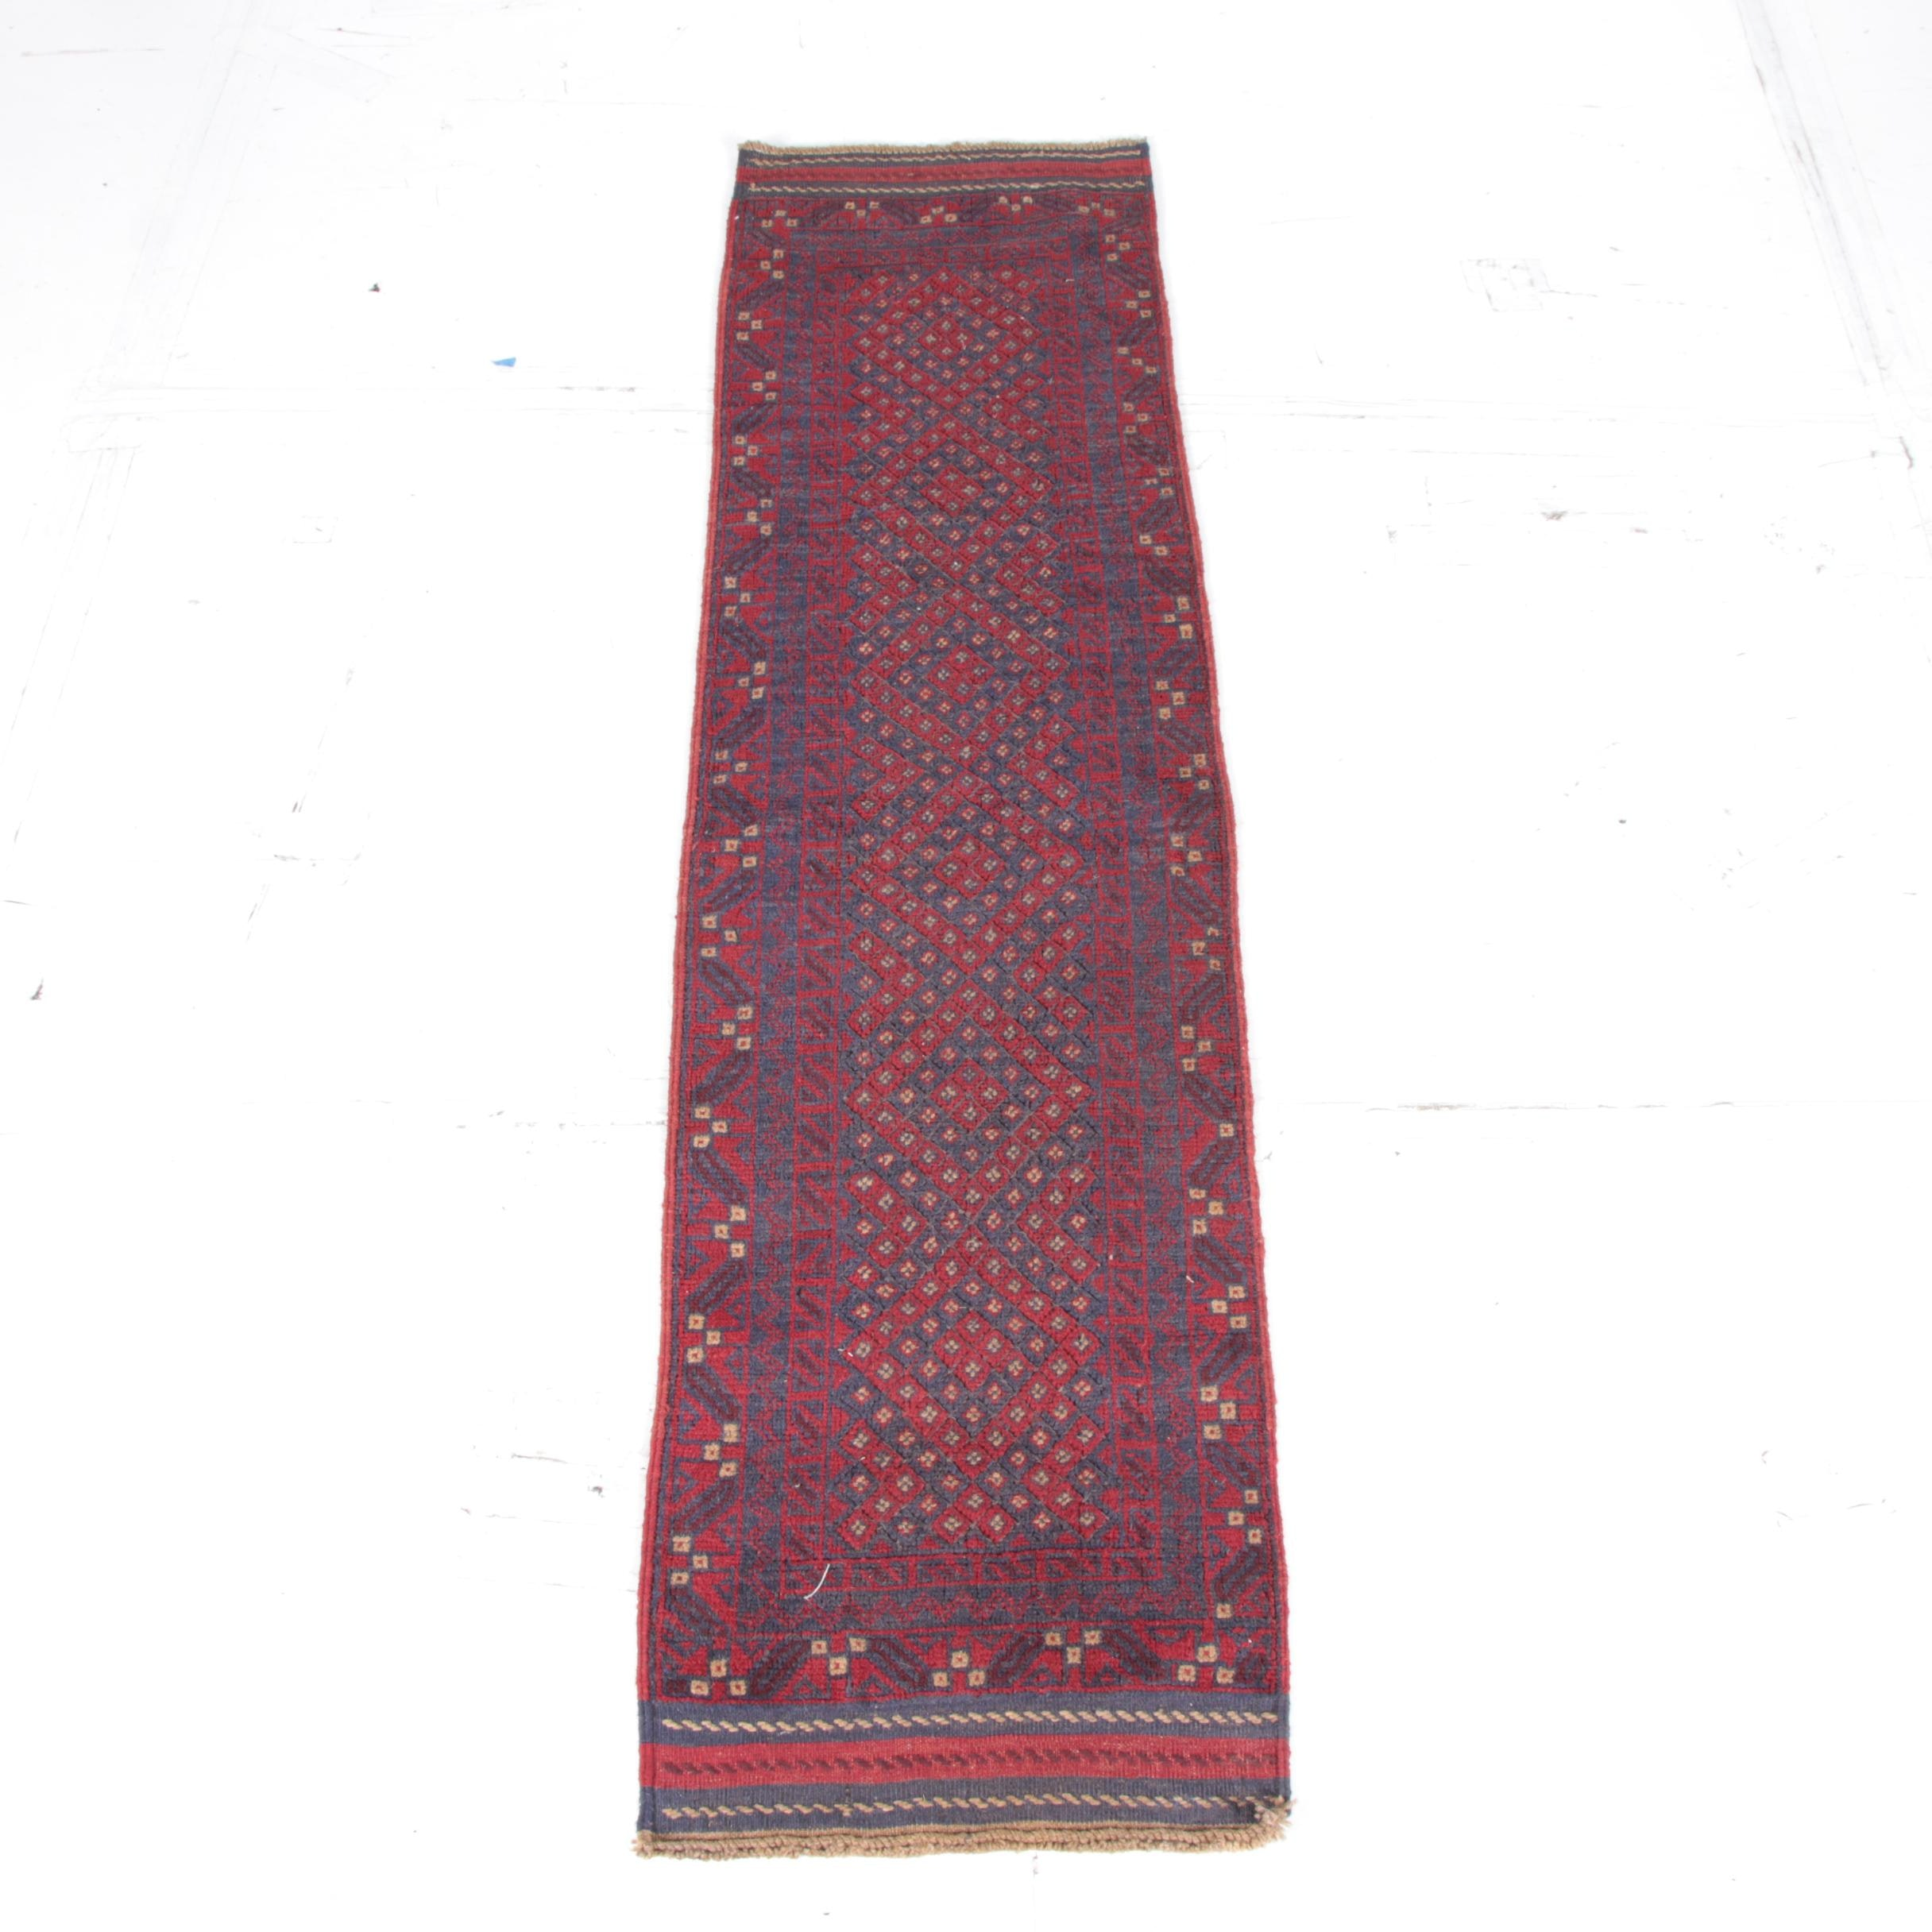 Hand-Knotted and Embroidered Baluch Tribal Carpet Runner